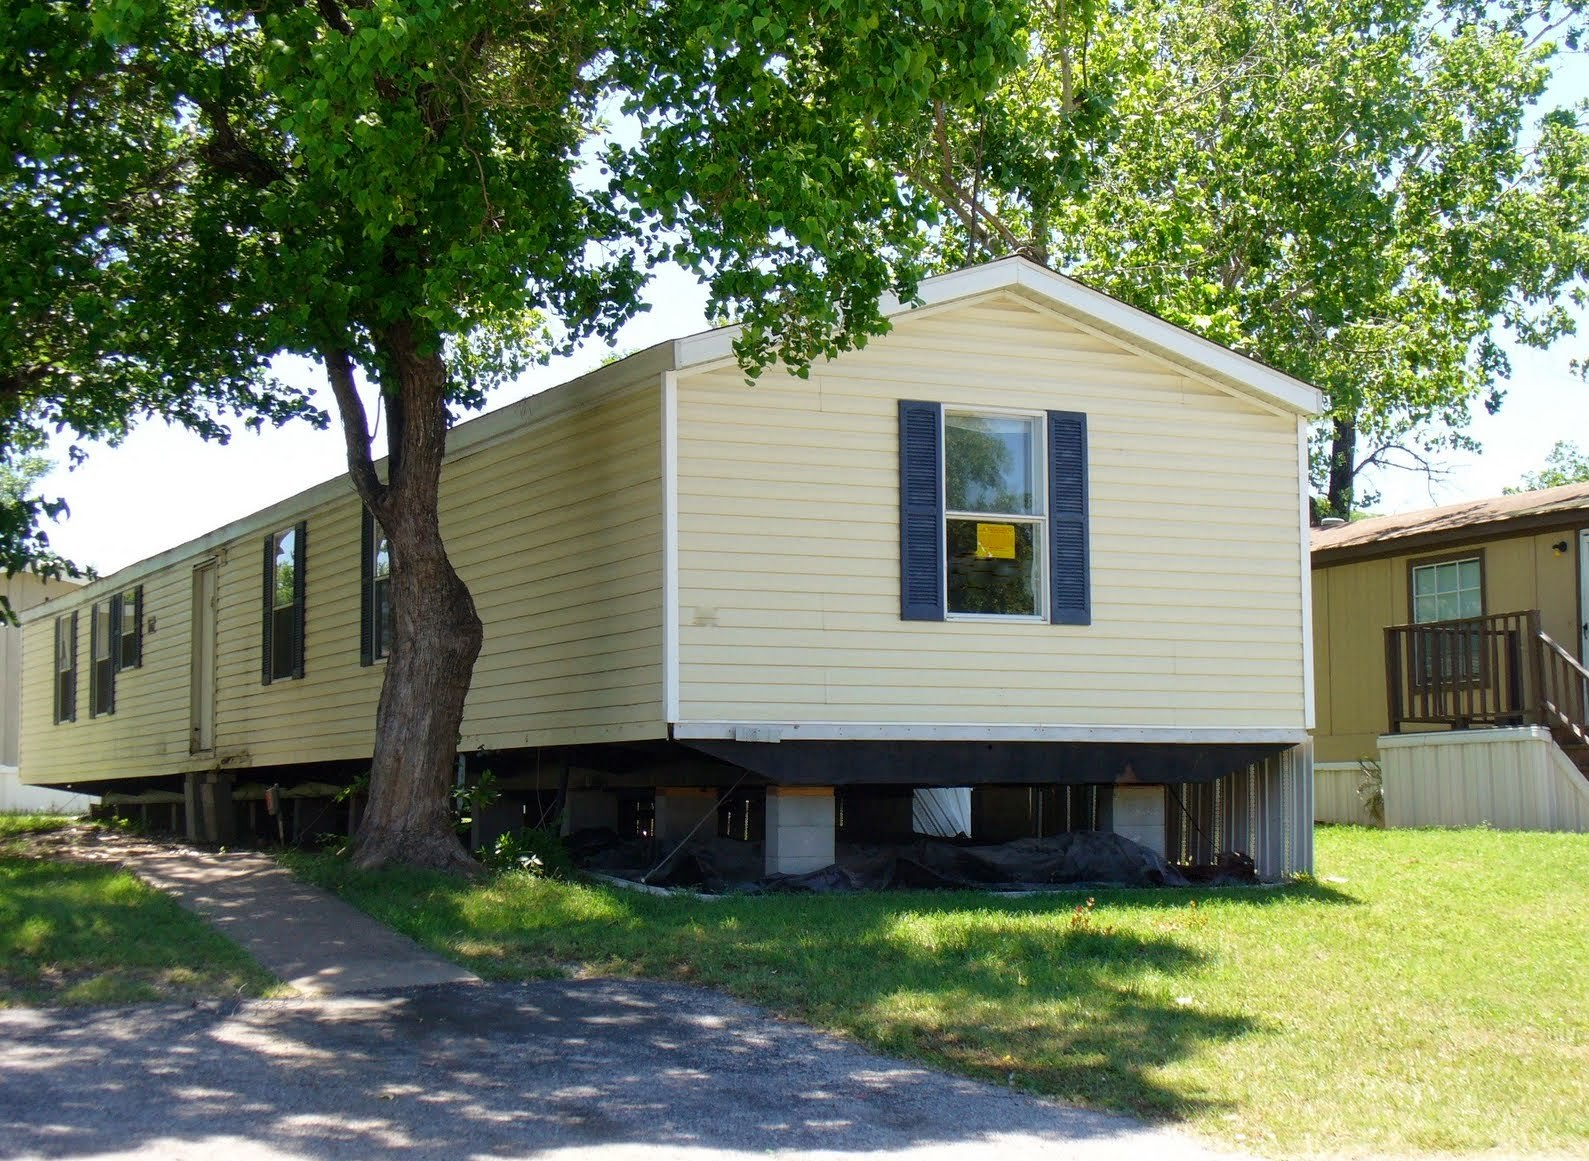 Used 4 Bedroom Mobile Homes For Sale 28 Images Used Mobile Homes For Sale Near San Antonio